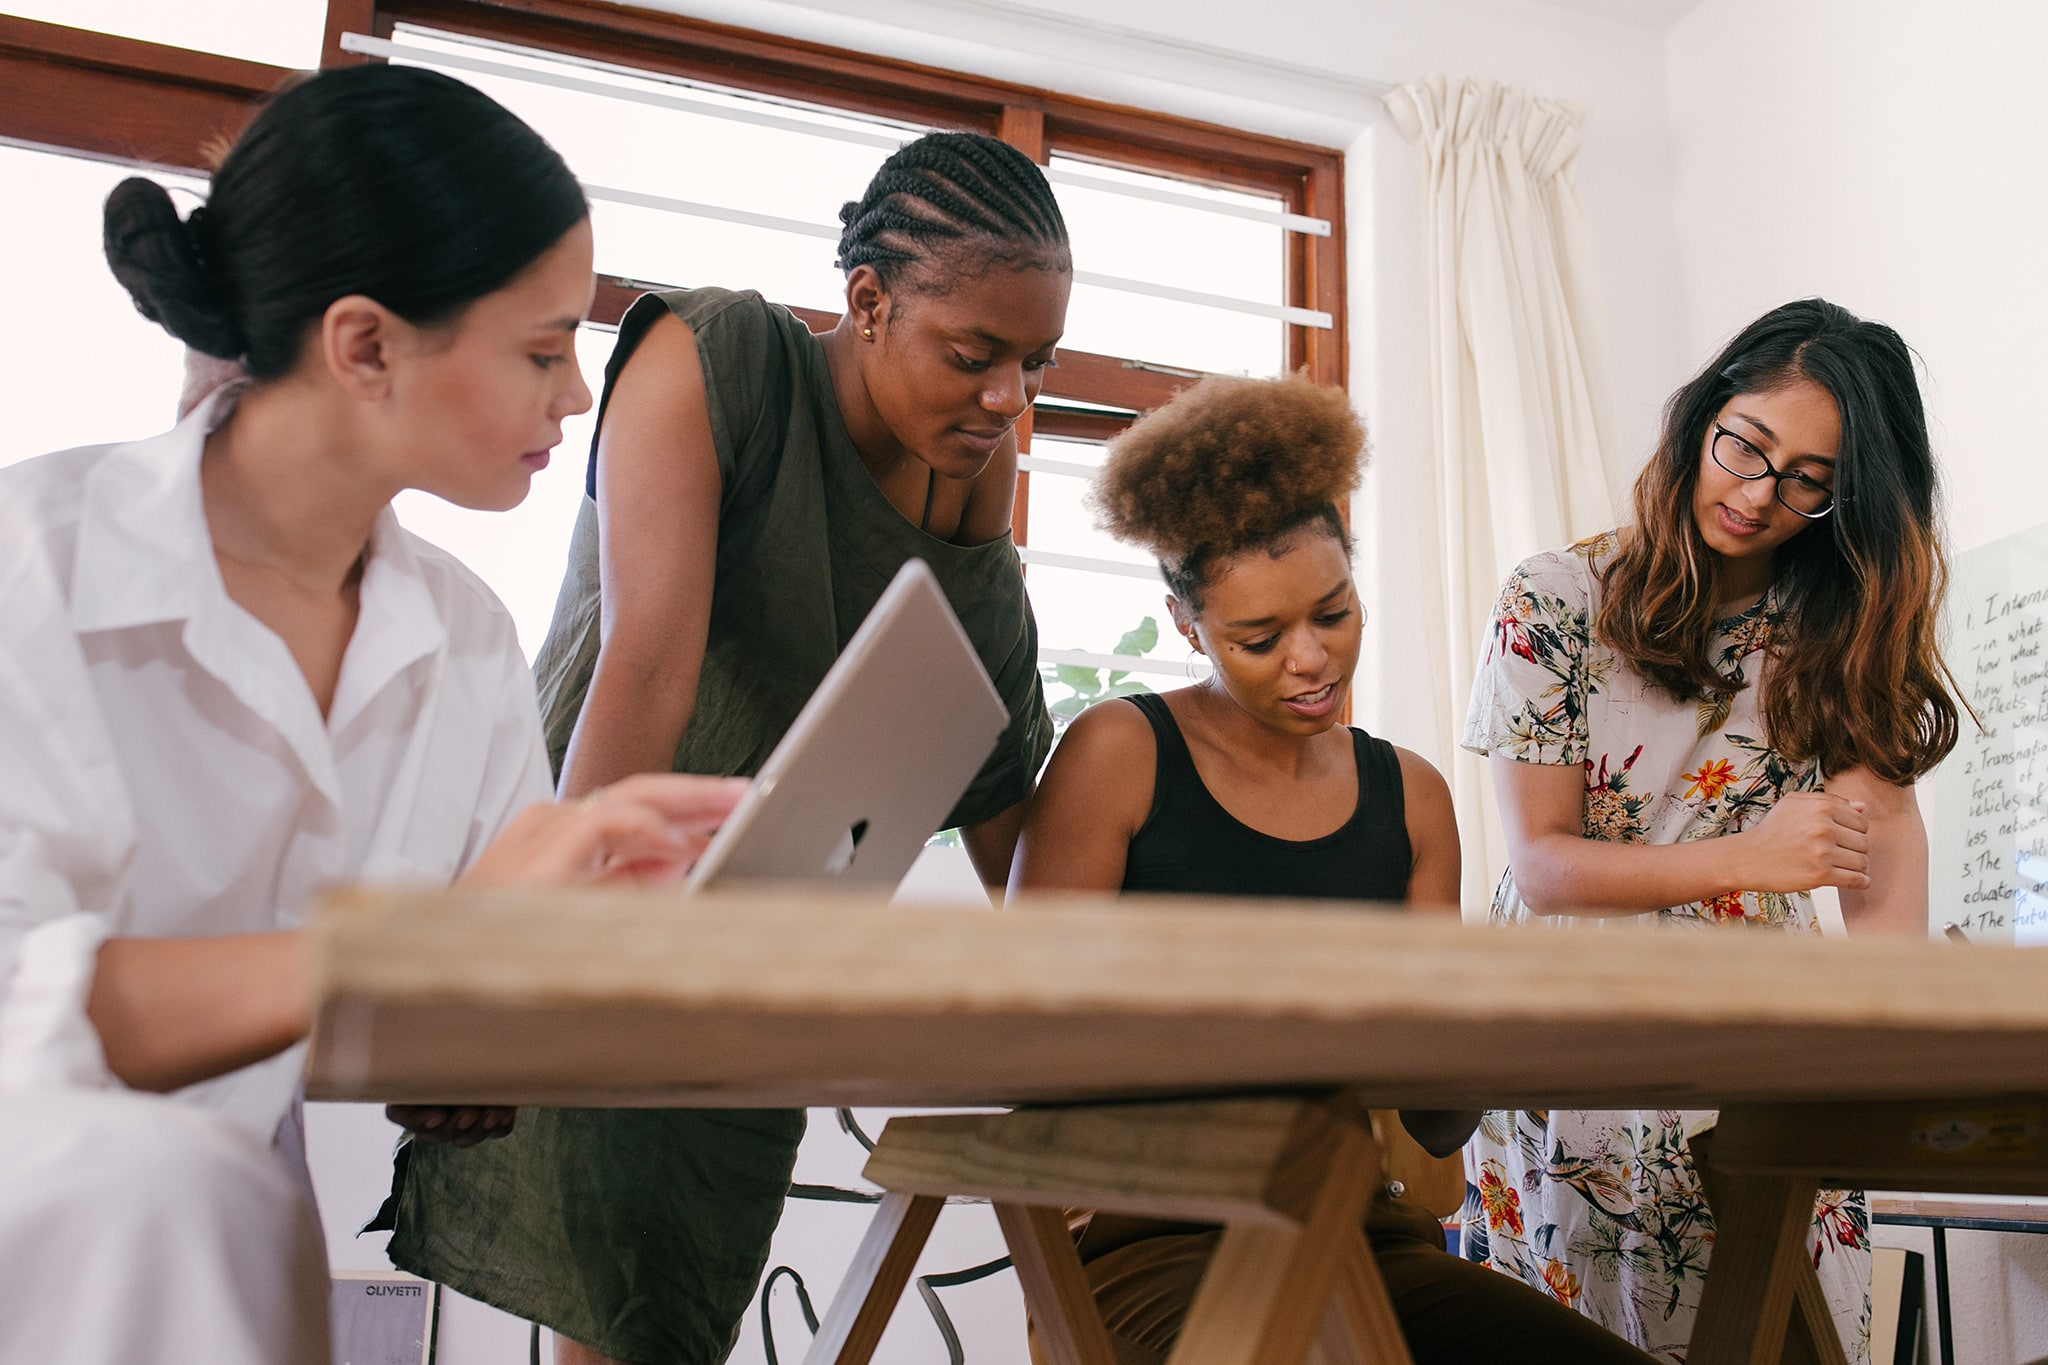 Four women are working over a desk deep in discussion, representing the diversity some corporations promote through policies and procedures at work